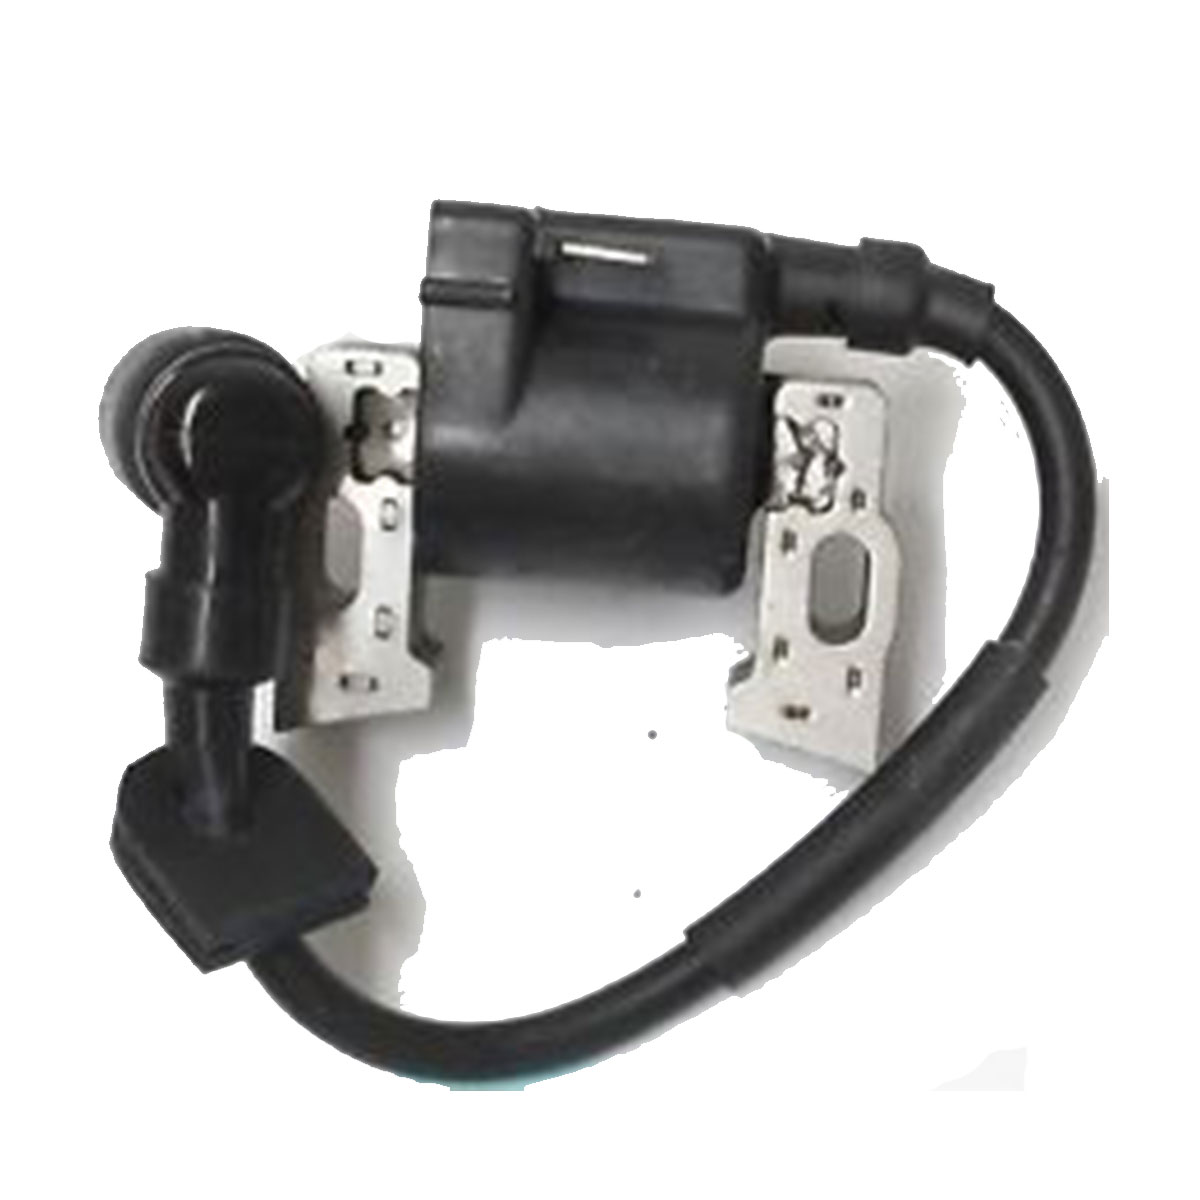 Vin Owner Lookup >> Honda Ignition Coil Assembly 30550-ZJ1-023 | Power Mower Sales